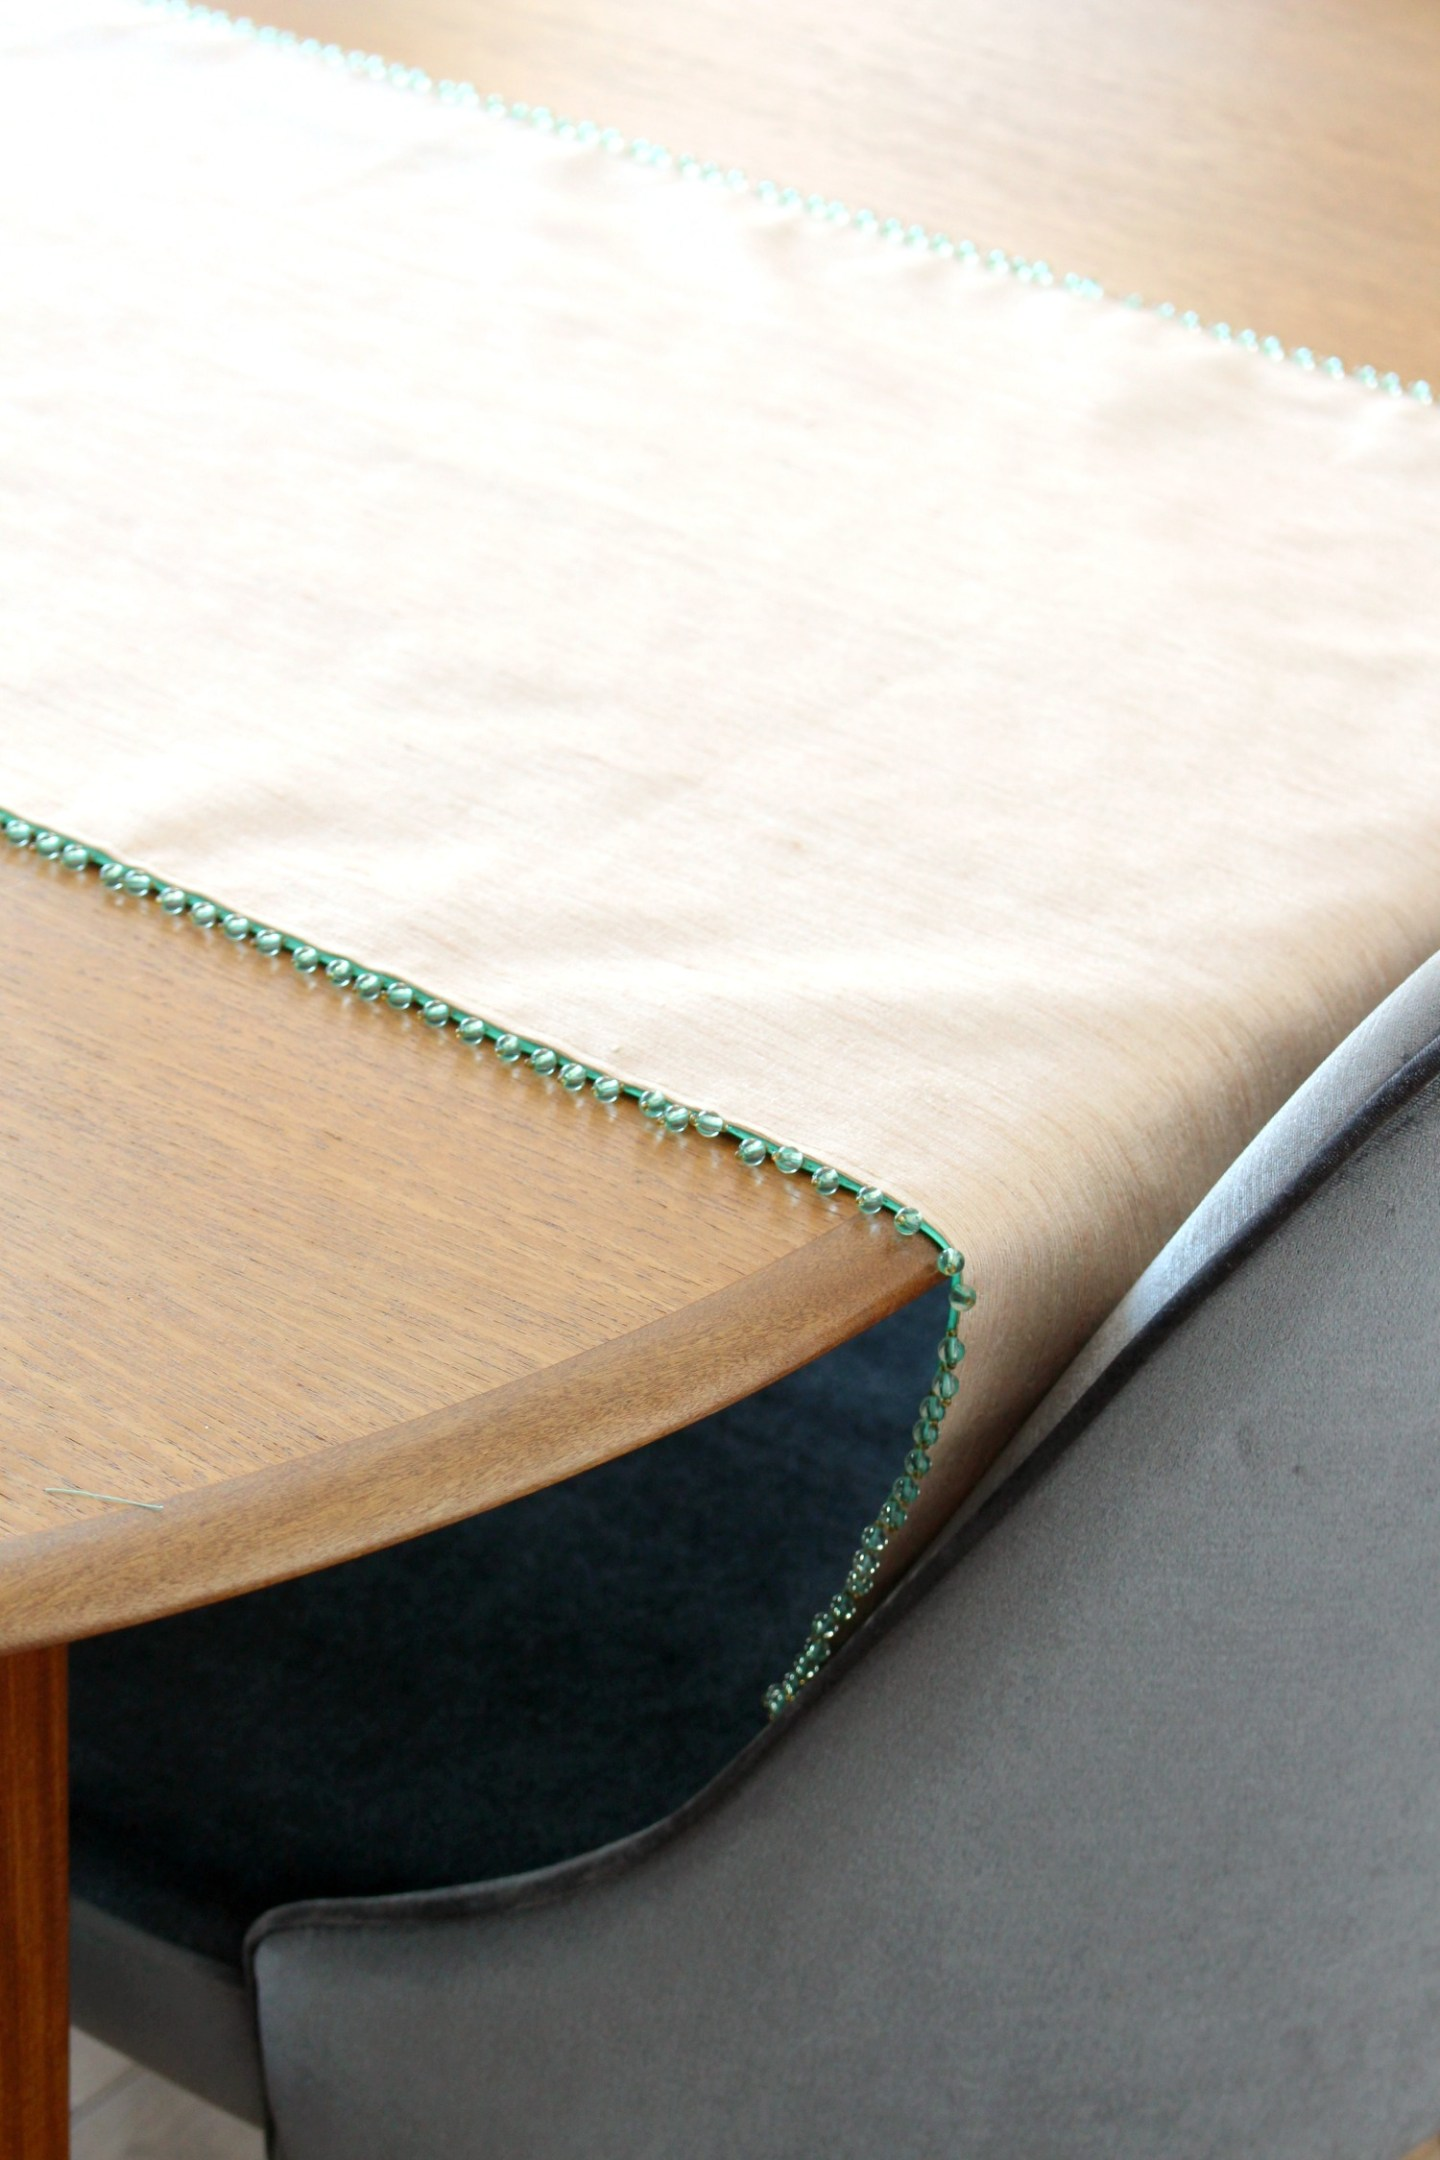 DIY Table Runner with Beaded Trim